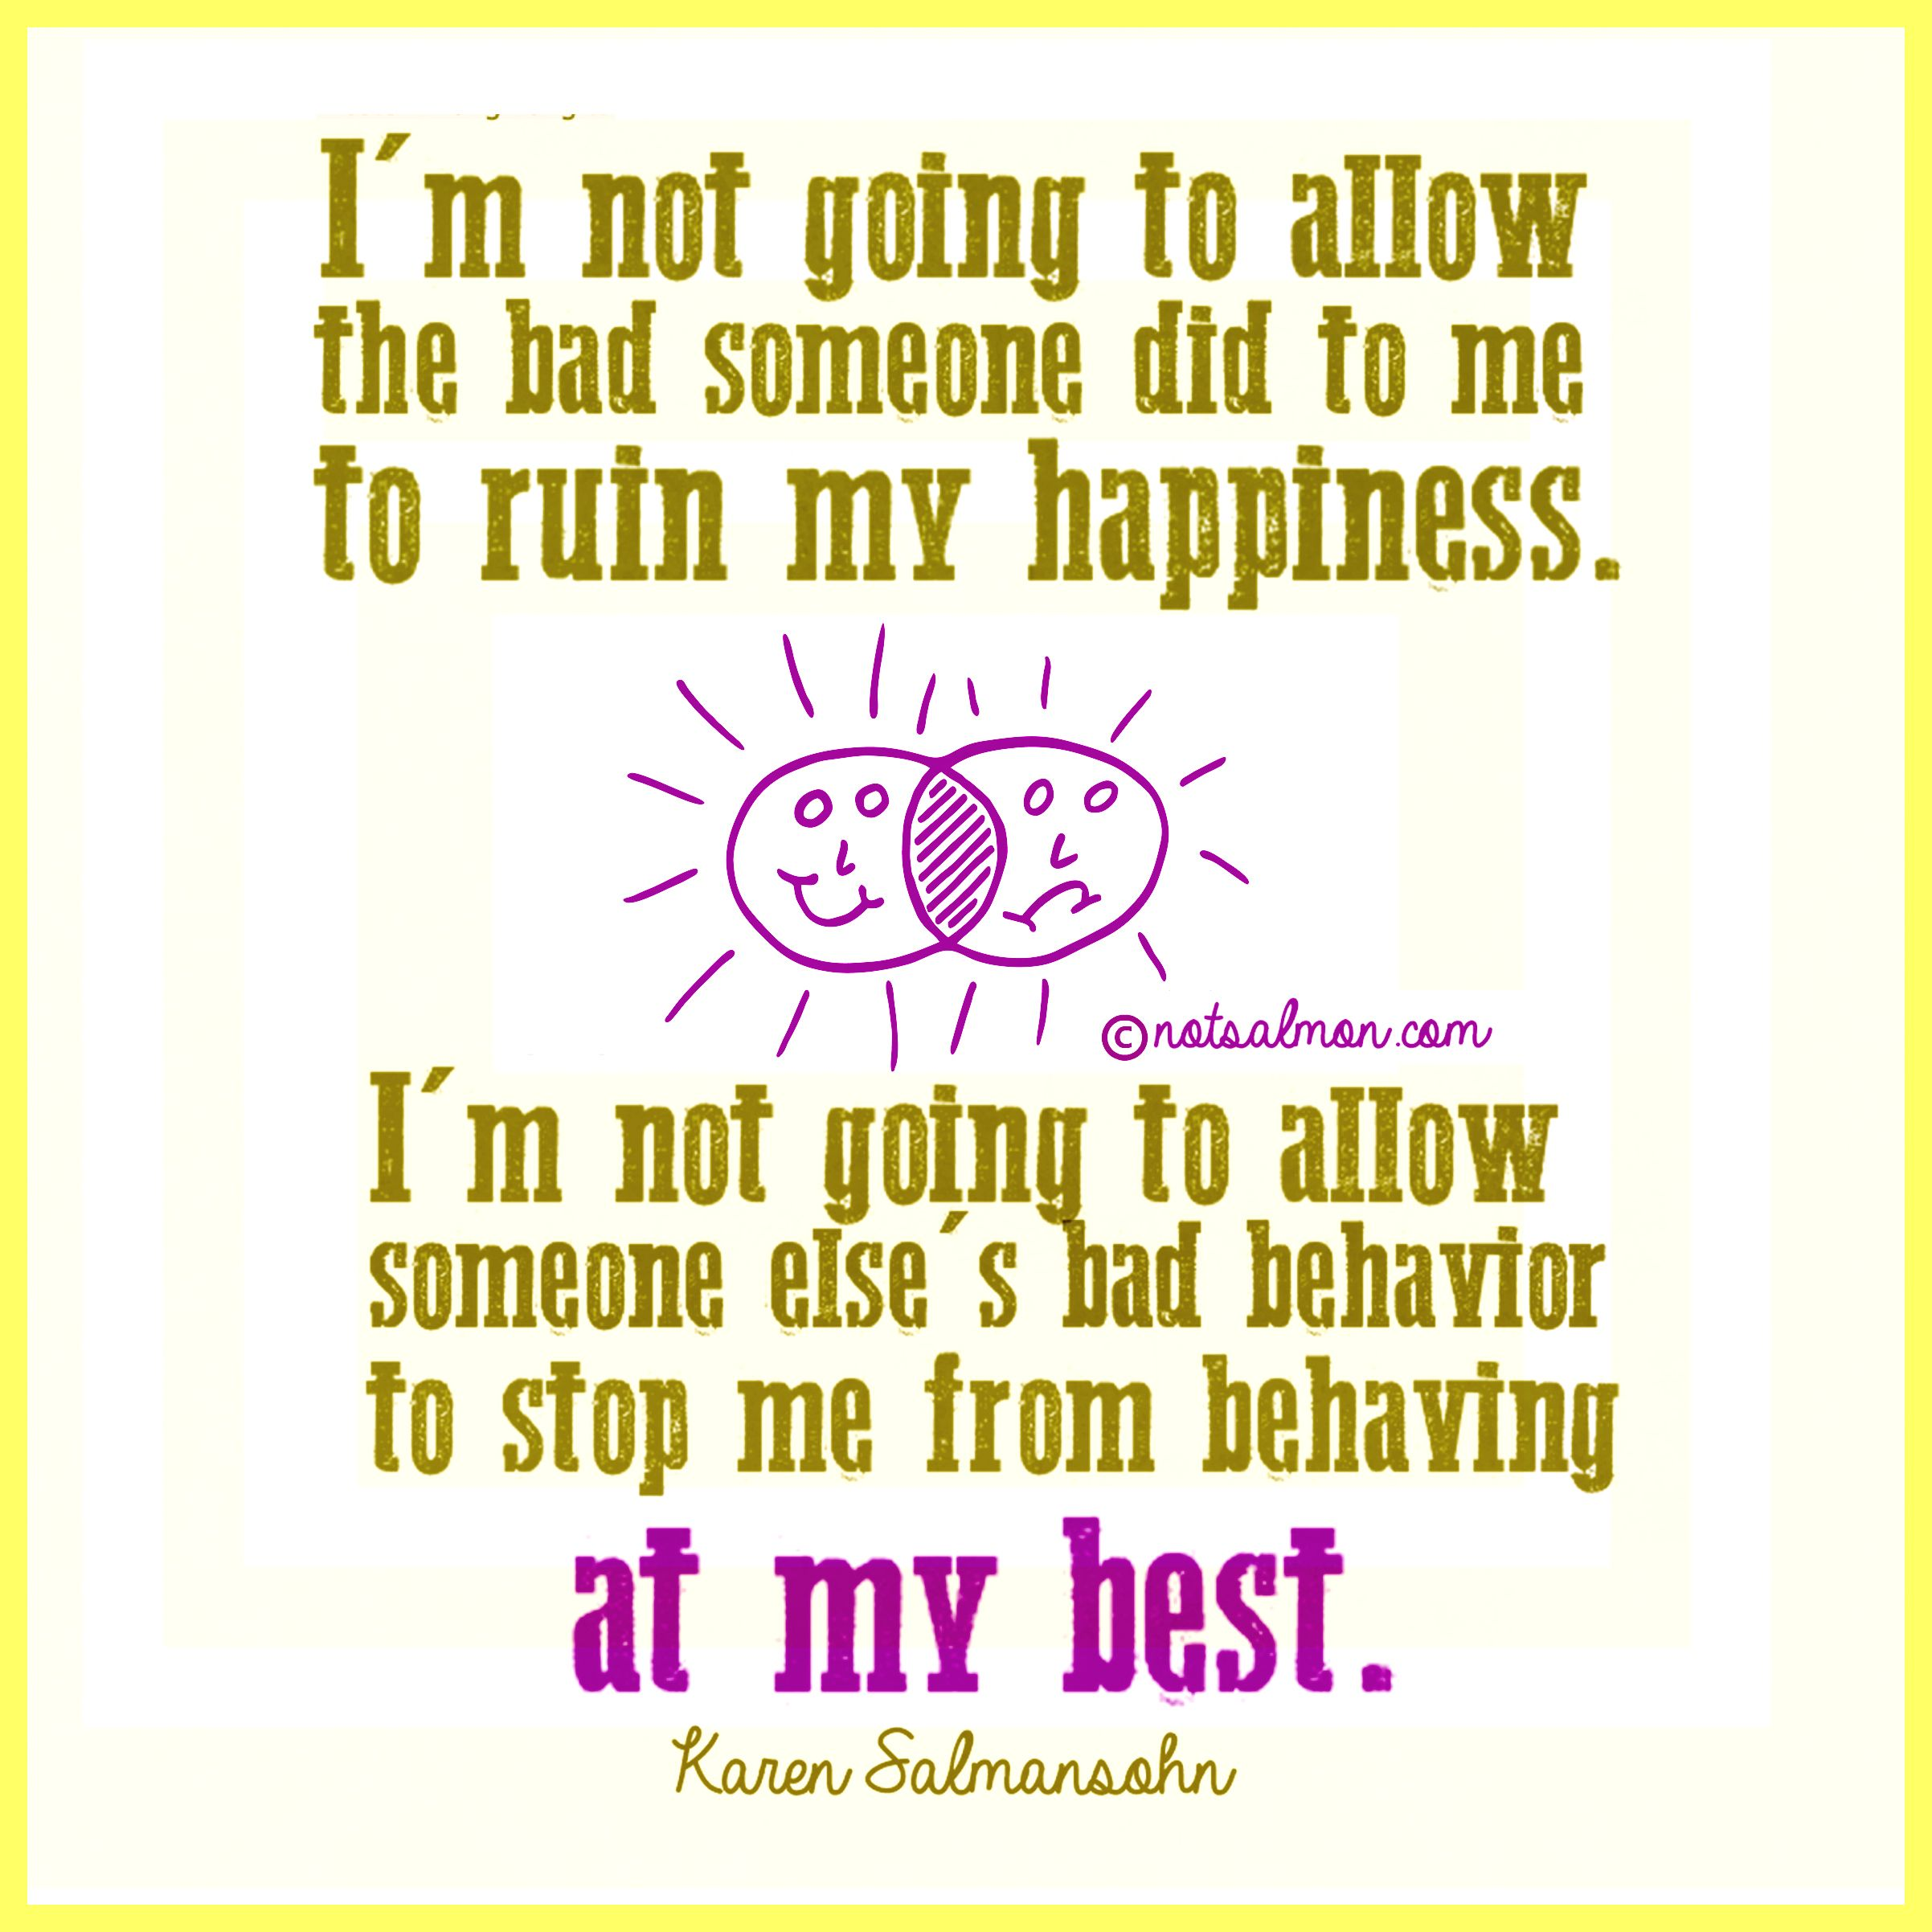 I M Not Happy Quotes: I'm Not Going To Allow The Bad Someone Did To Me To Ruin